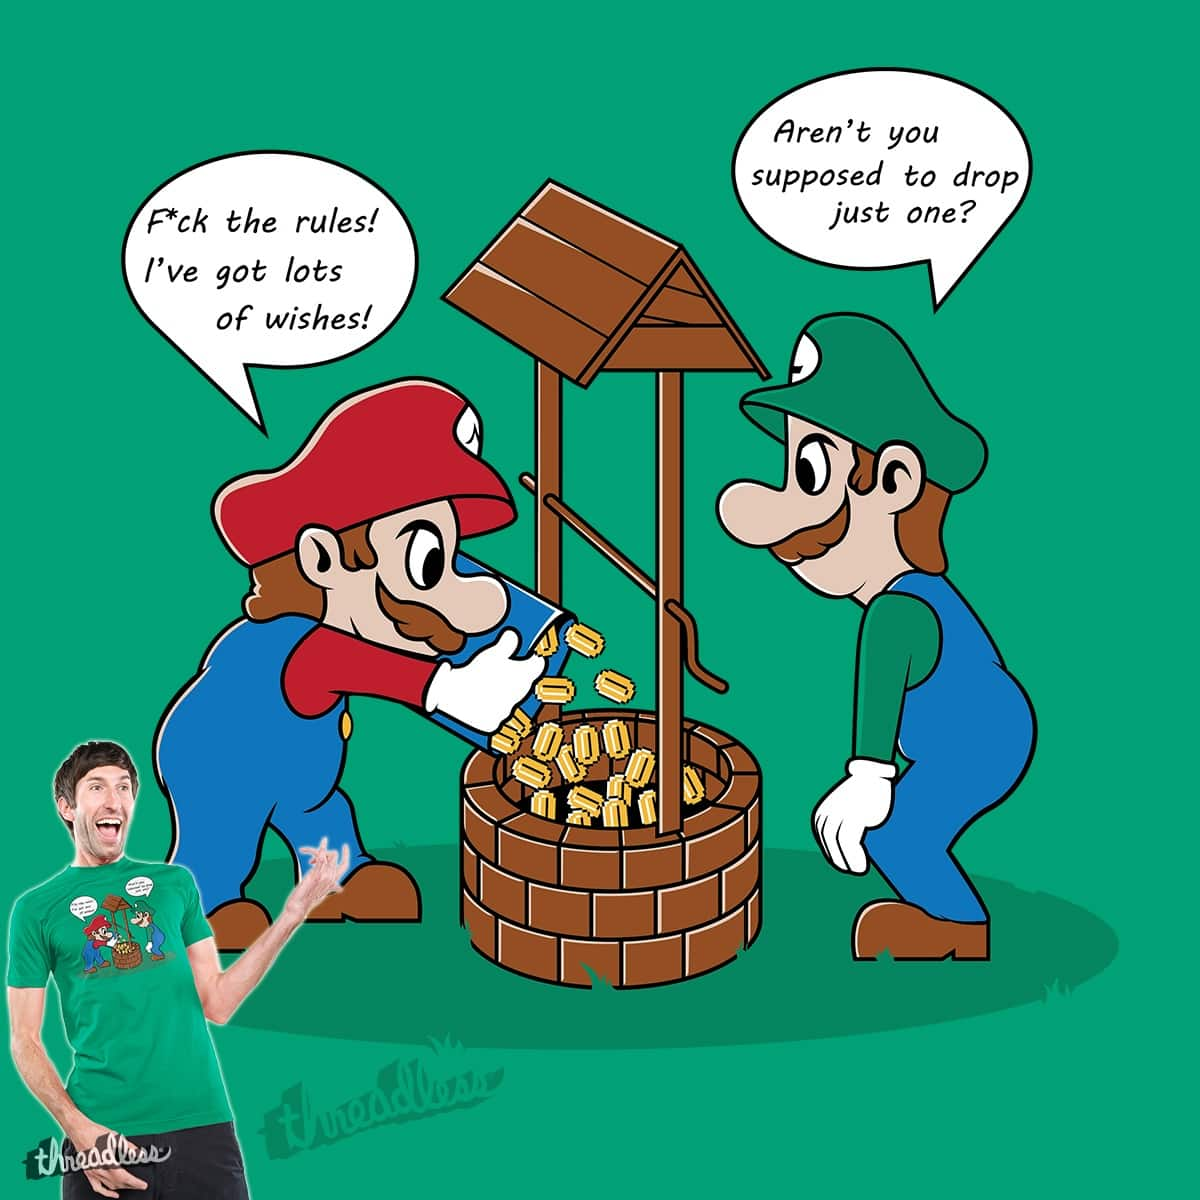 A LOT of wishes! by DesignsbyReg on Threadless